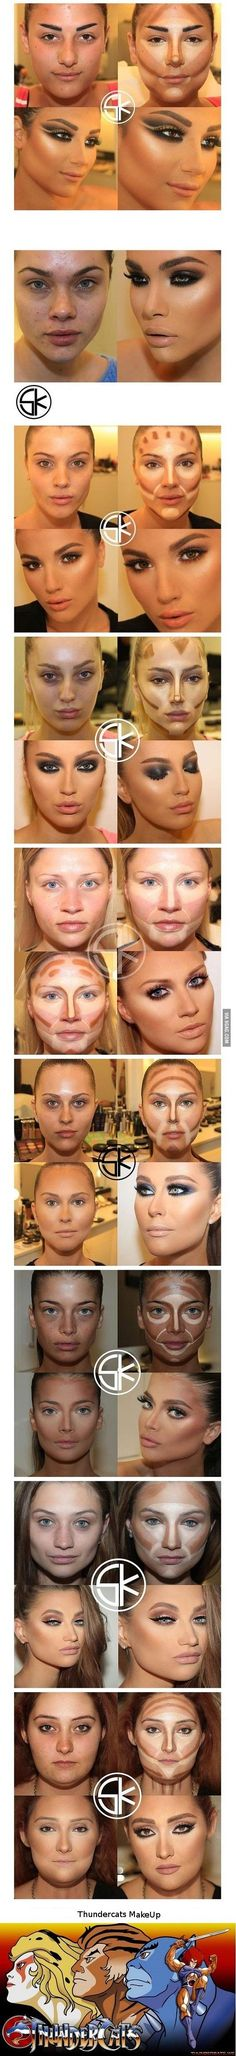 This is actually helpfull makeup tutorial...(just don't go extrem...) If you do, it's nothing but lies, don't forget to take them to the pool. #coupon code nicesup123 gets 25% off at  Provestra.com Skinception.com